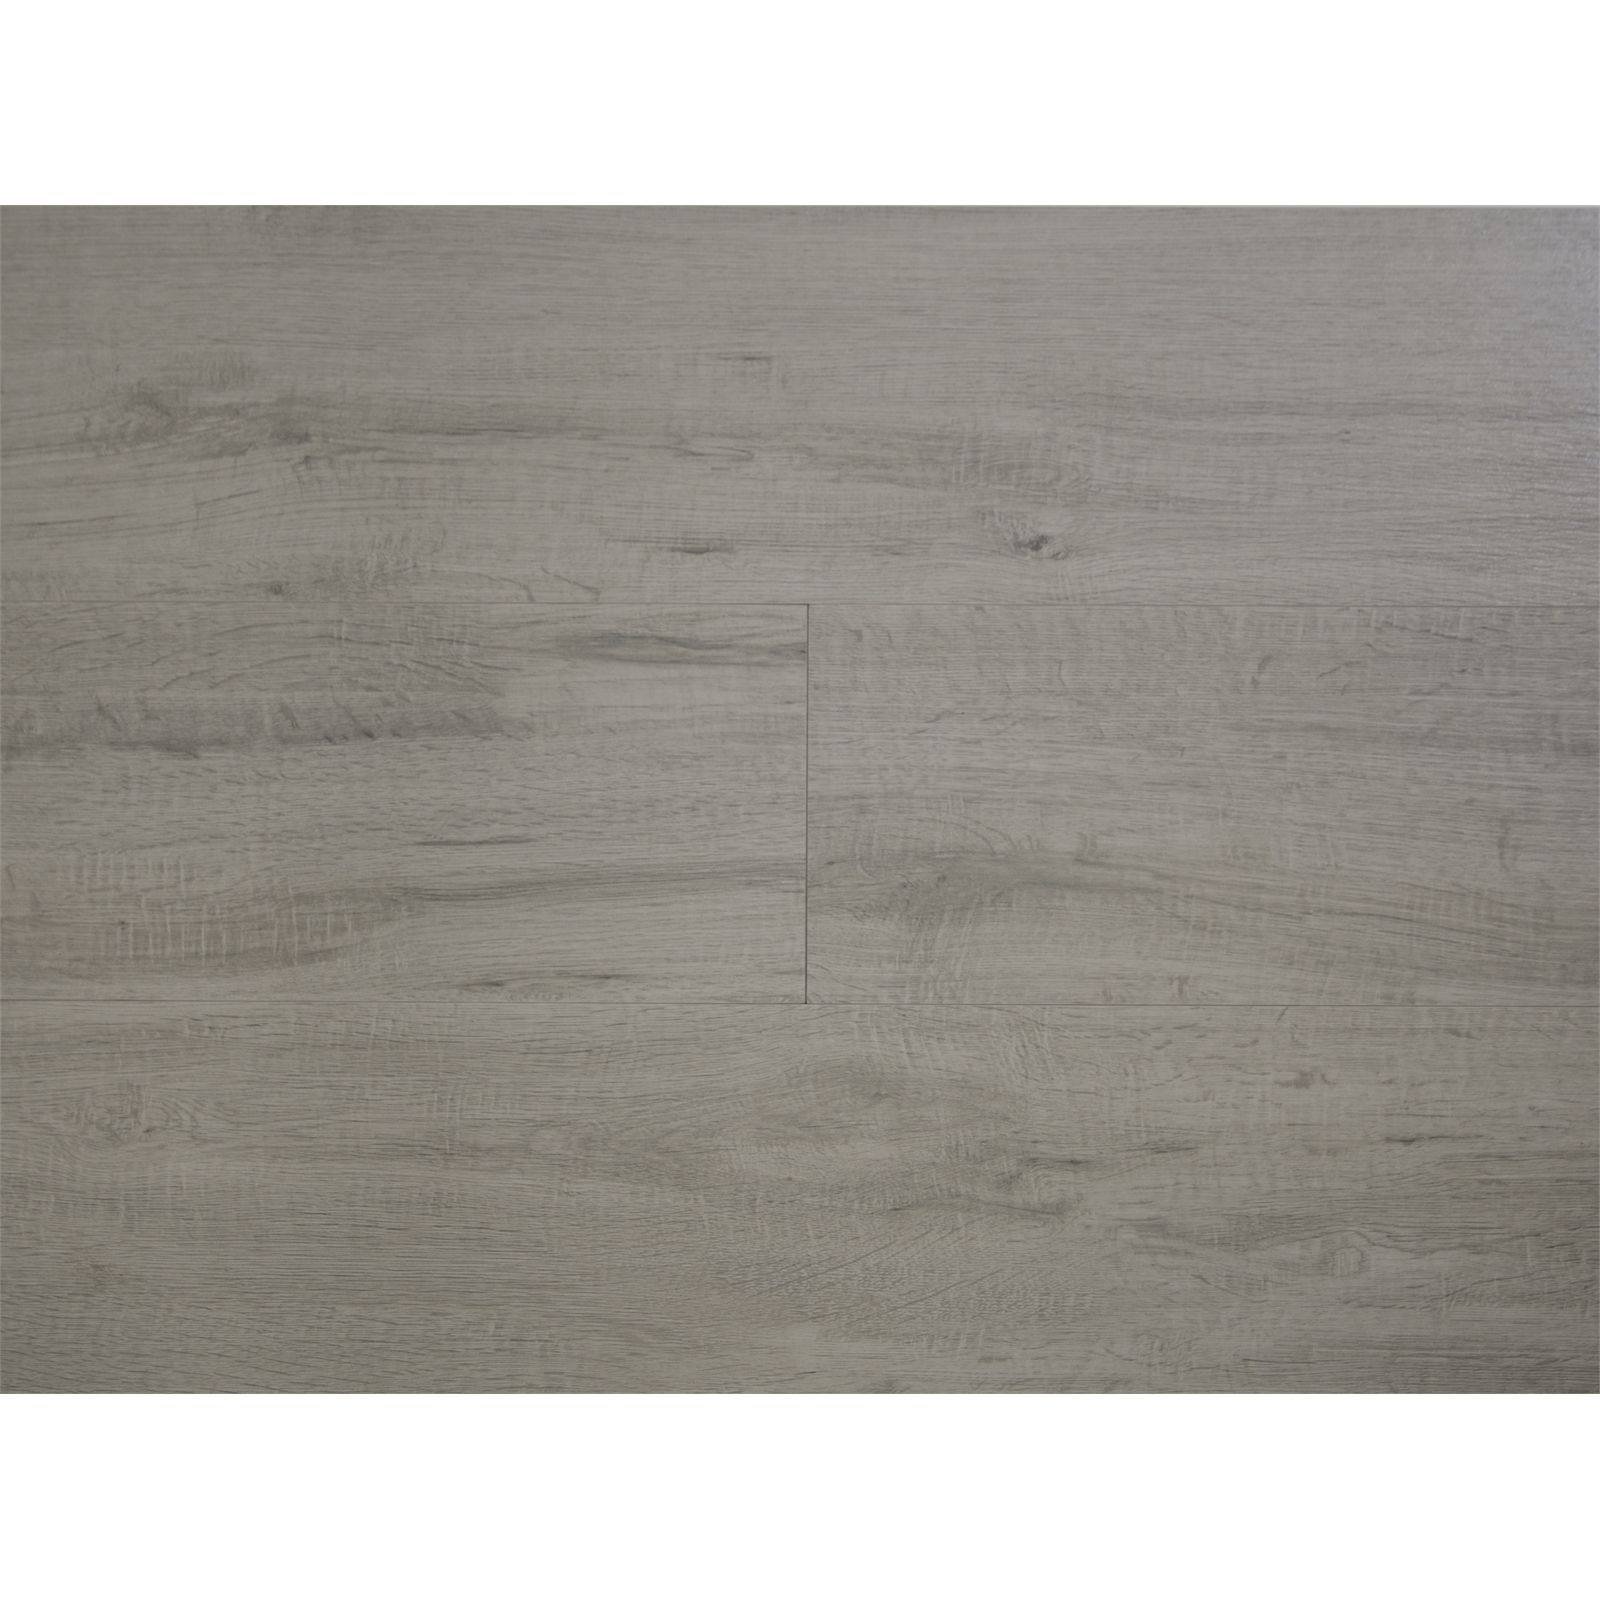 Pin by merrick on wishful thinking pinterest wishful thinking find coulson tiles 150 x ash grey kakadu timber porcelain floor tile 14 pack at bunnings warehouse visit your local store for the widest range of paint dailygadgetfo Images